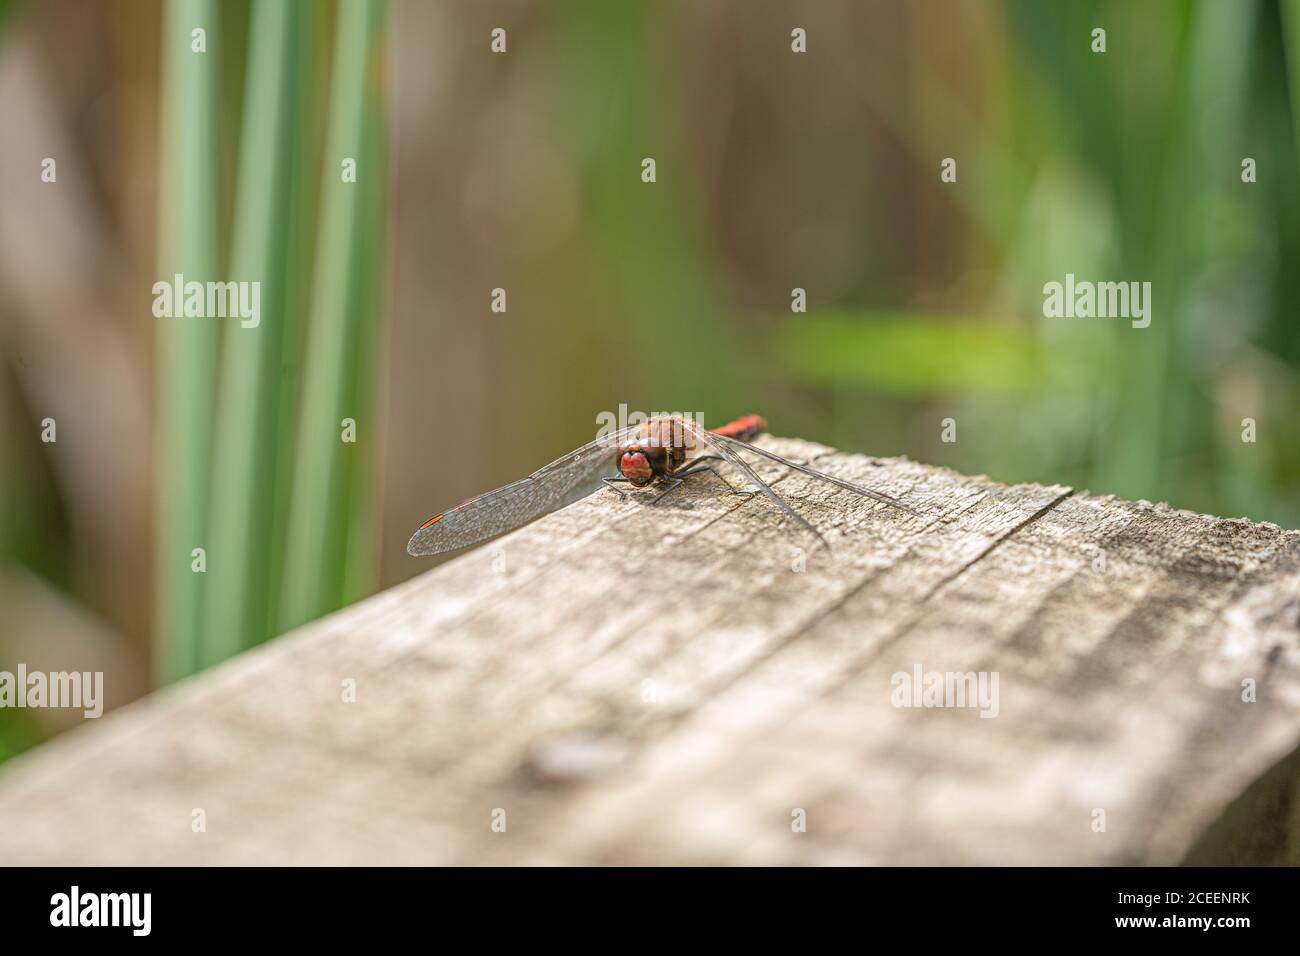 Close up macro view of Red Darter Dragonfly Head Eyes and Wings extreme close up banner image Stock Photo